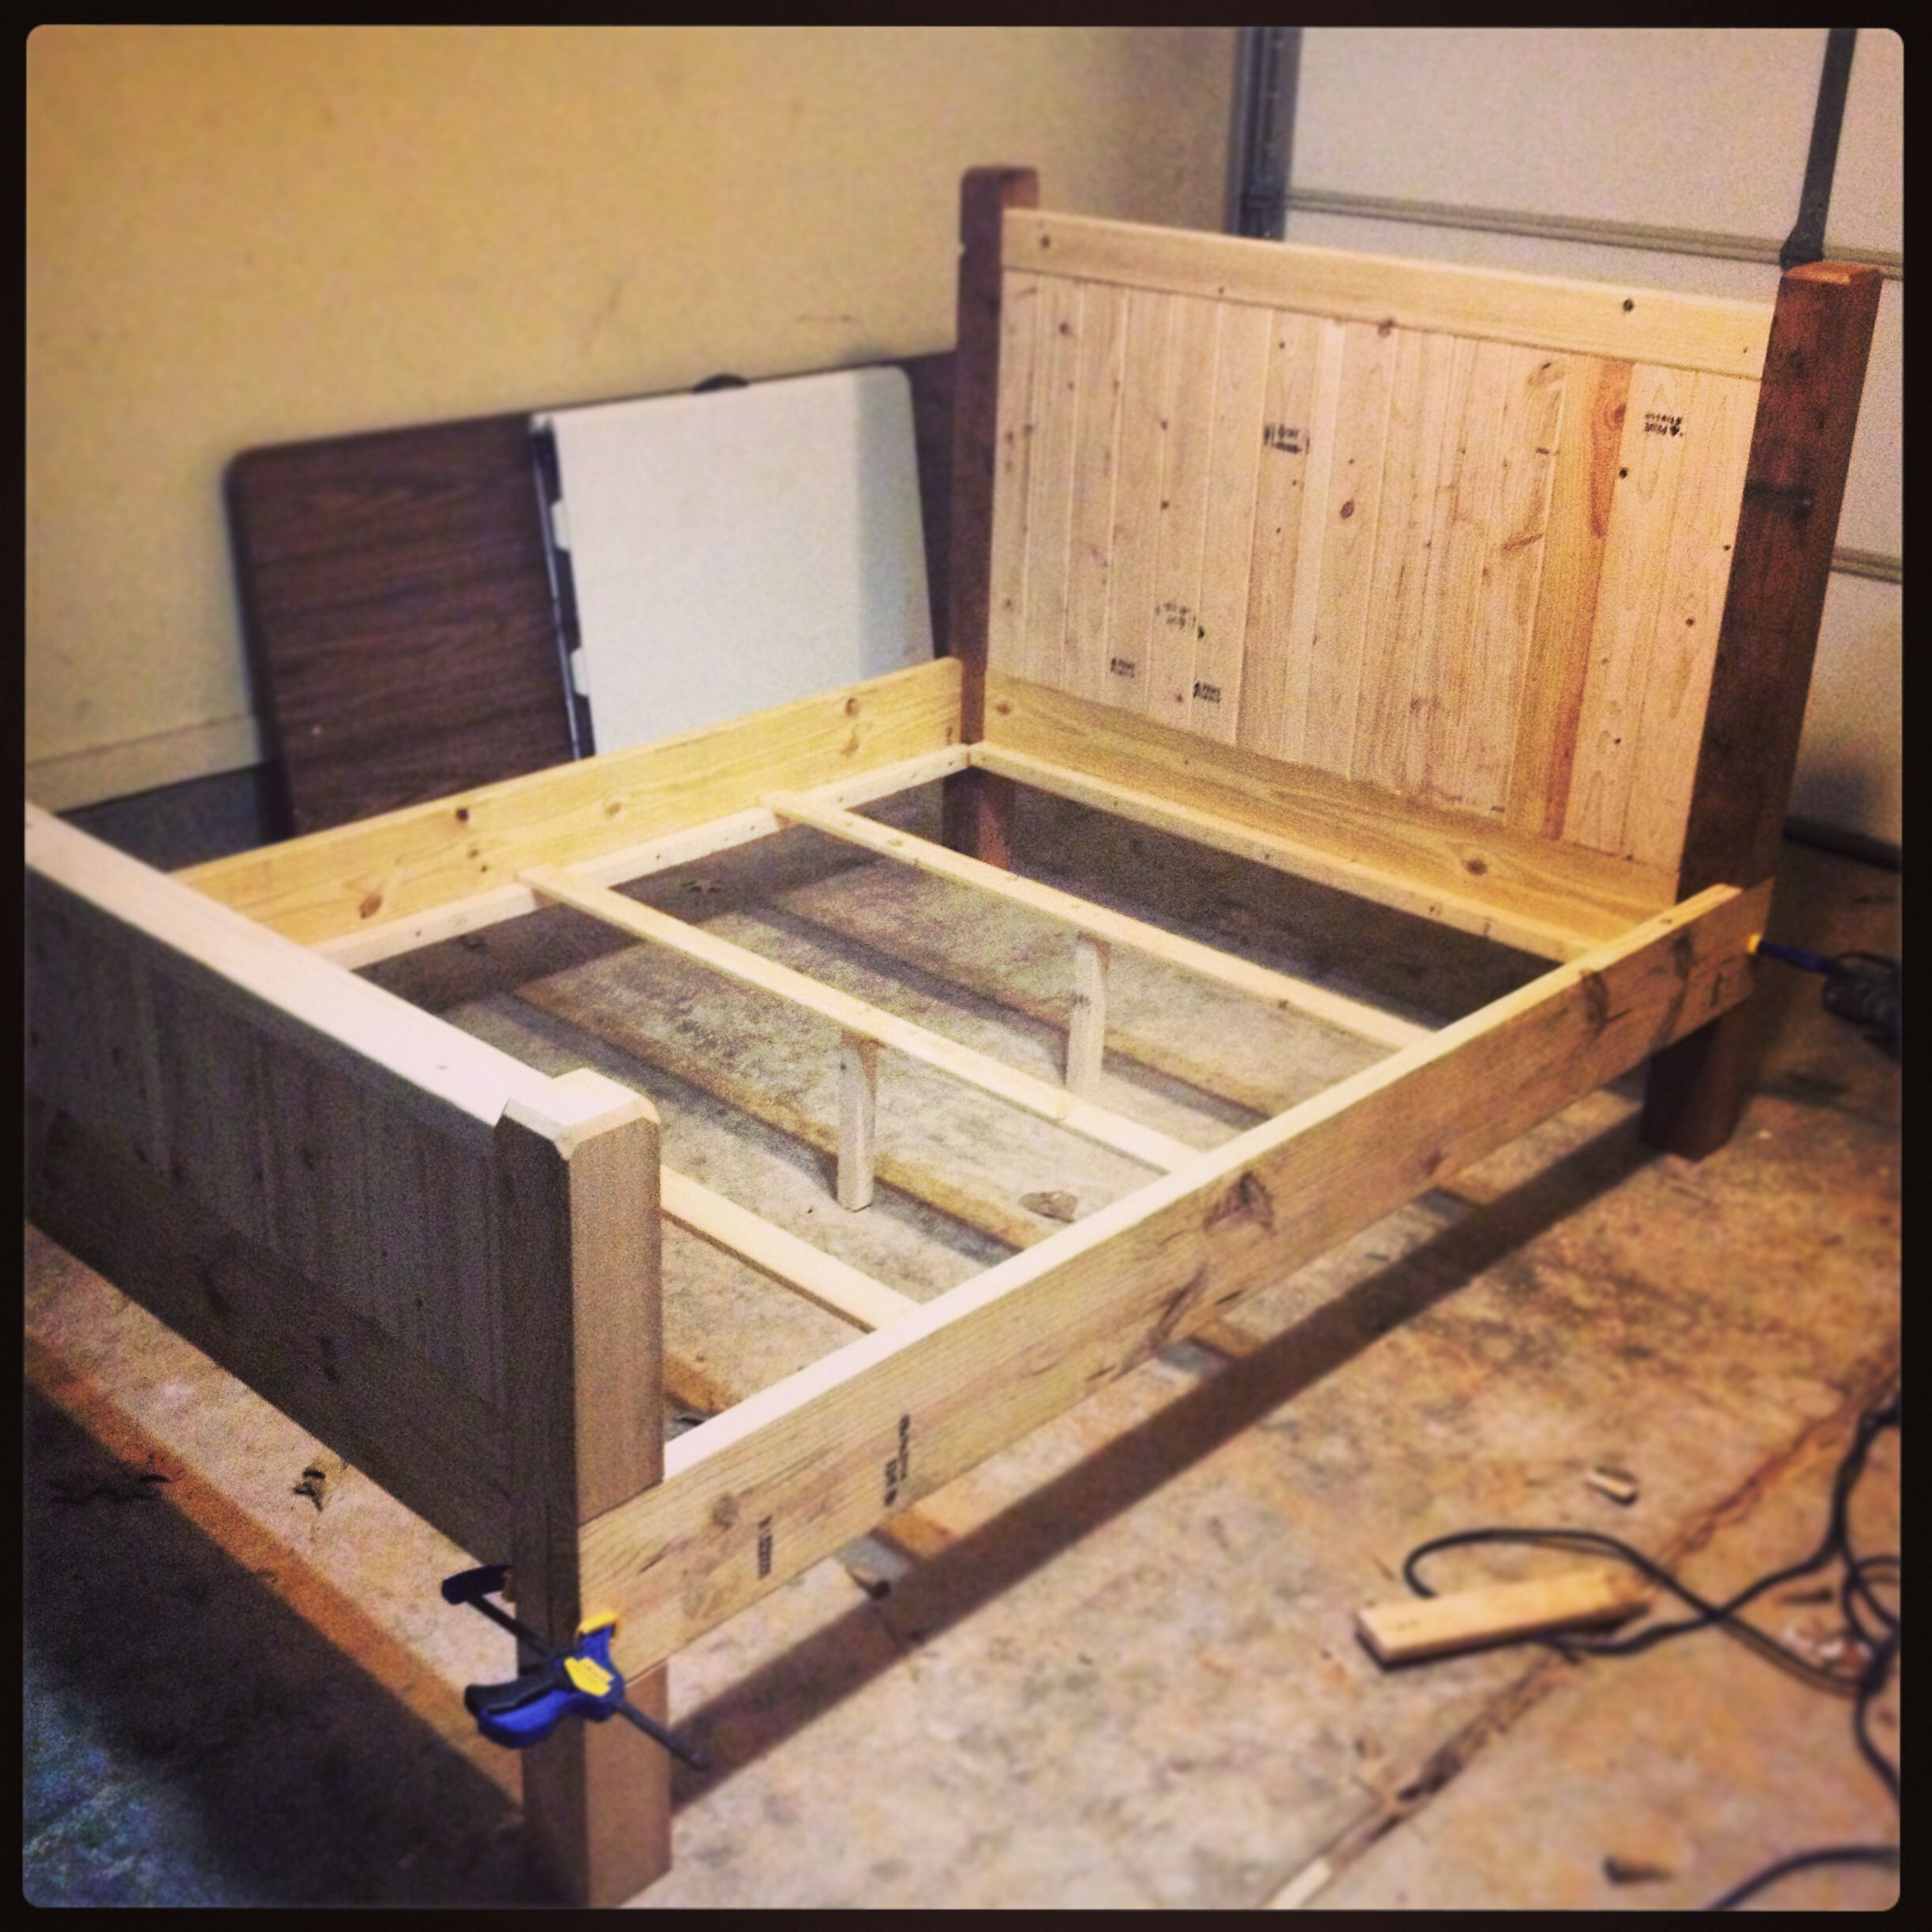 diy full size bed frame almost finished made with 2x4s 2x8s and 4x4 - Full Sized Bed Frames